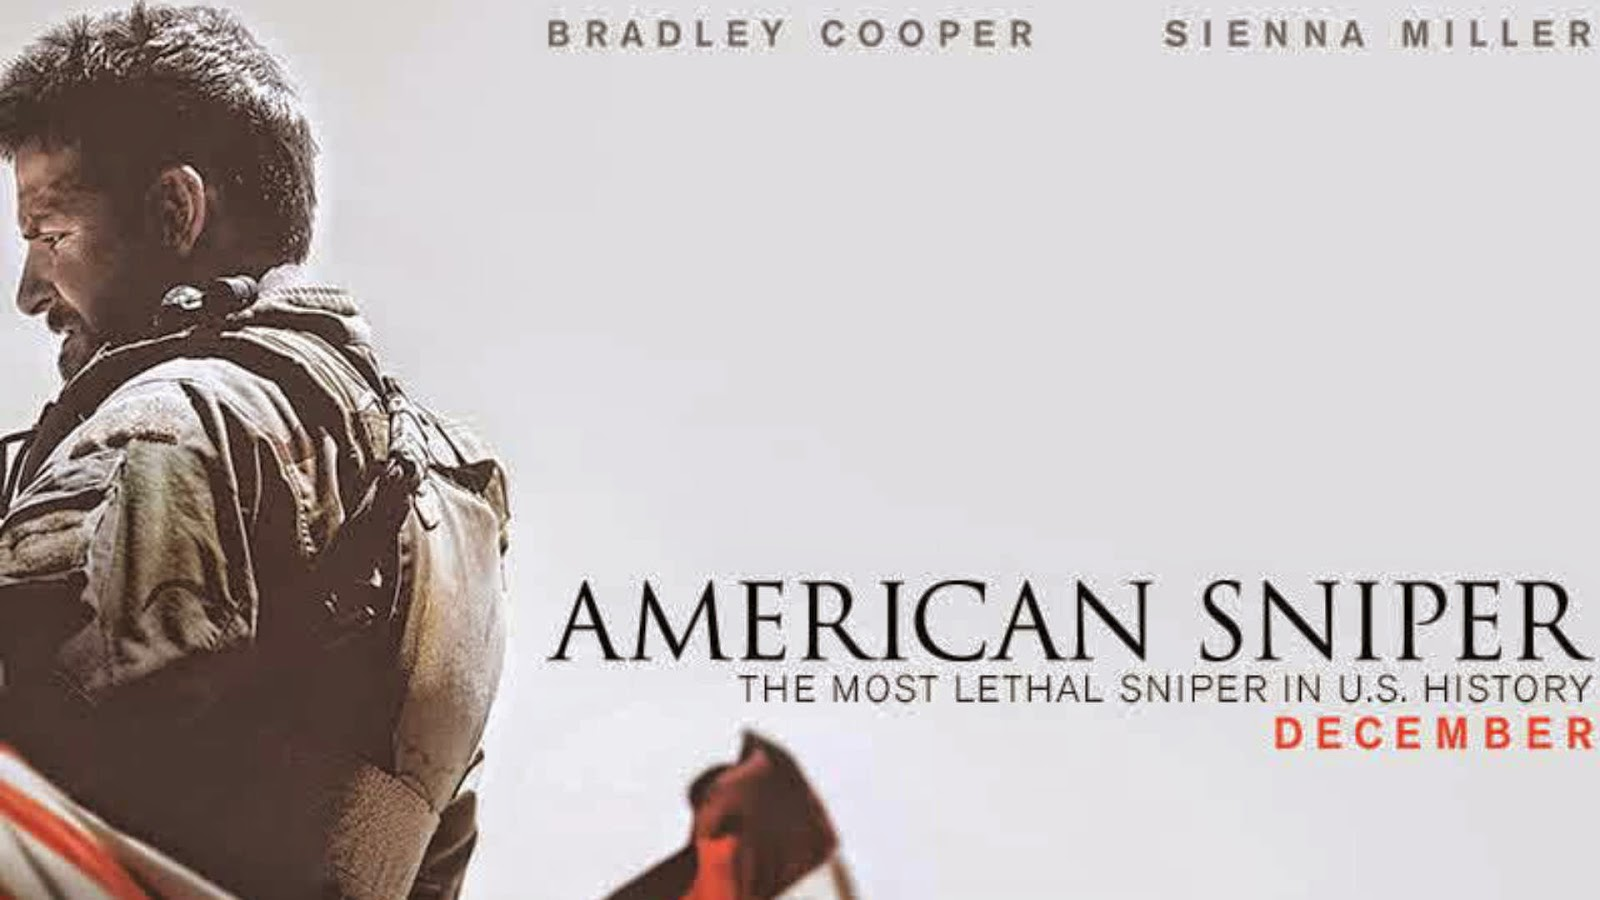 Hd Wallpapers American Sniper Movie 1200 X 1200 142 Kb Jpeg HD 1600x900